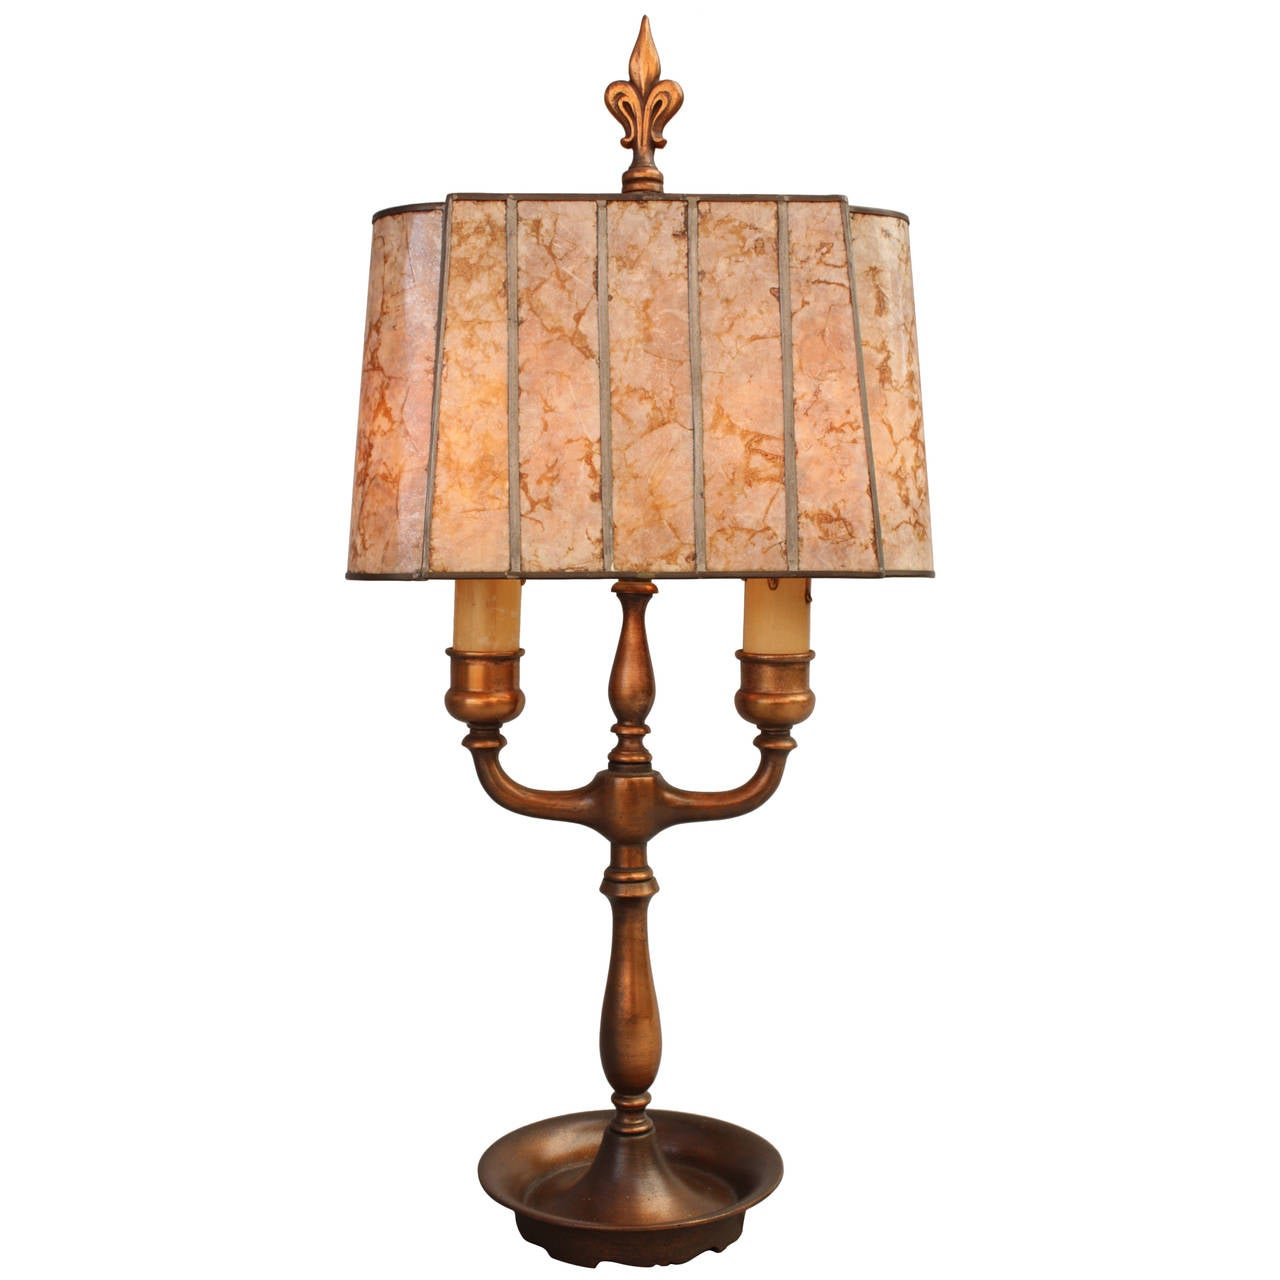 Vintage 1920s Mica Table Lamp With Narrow Profile At 1stdibs